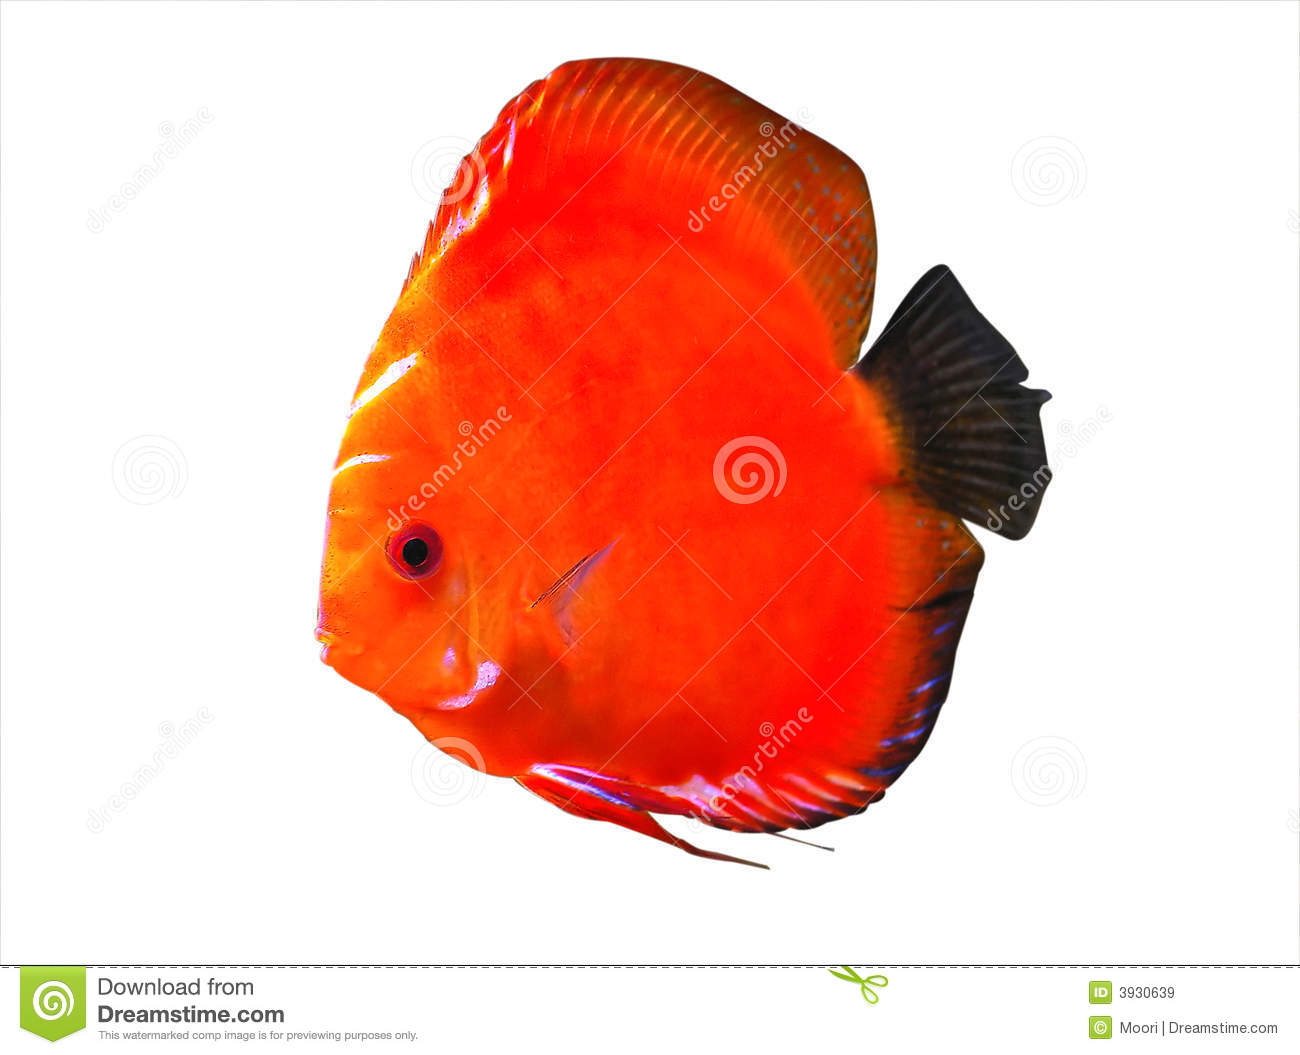 Symphysodon Discus Aquarium Fish Royalty Free Stock Images.